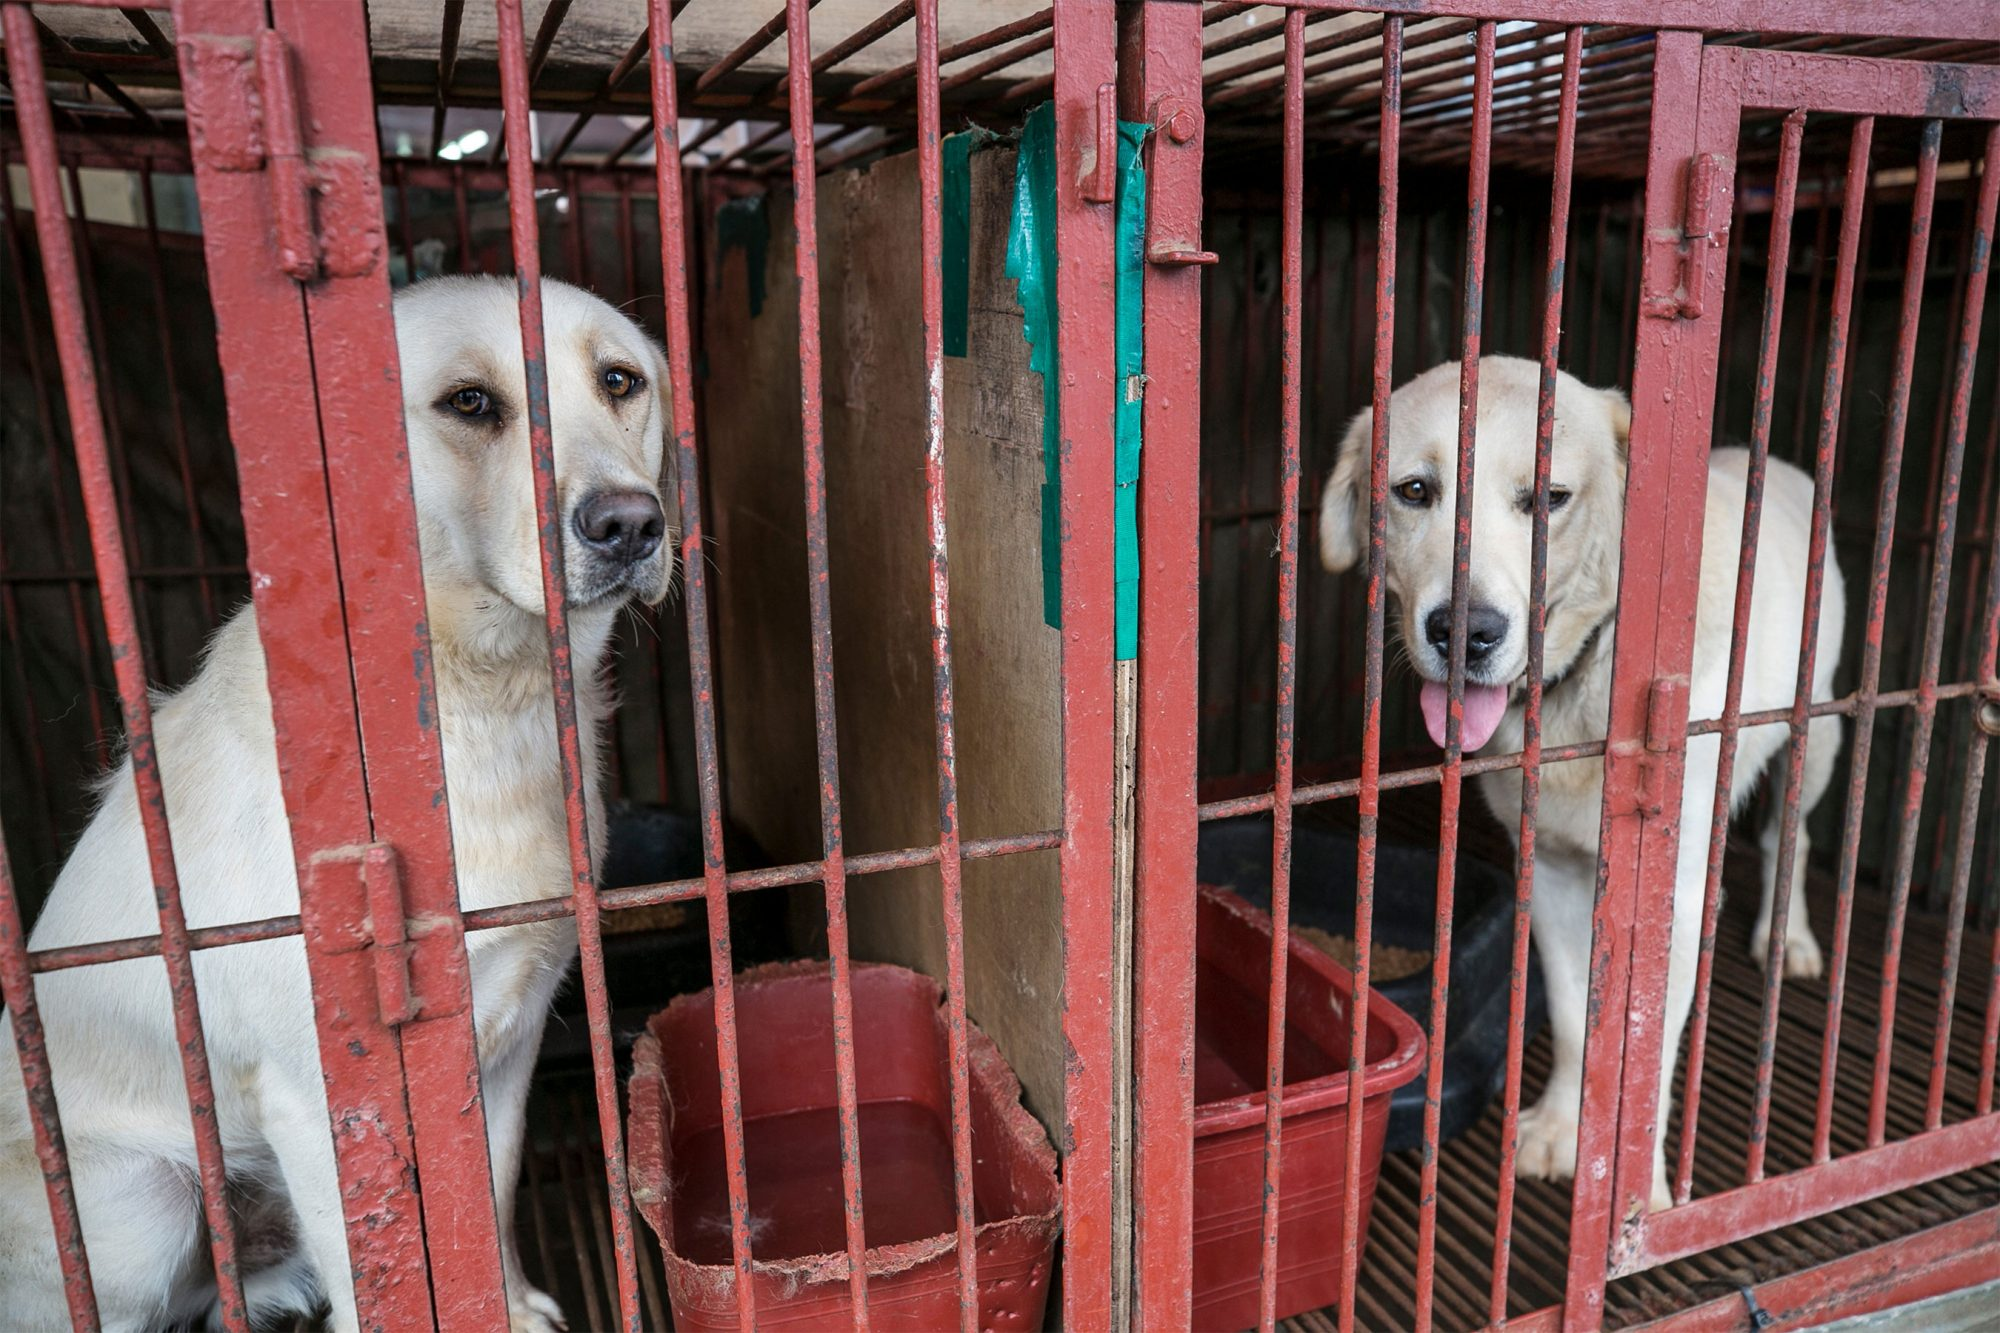 Humane Society International/Korea helps rescue dogs